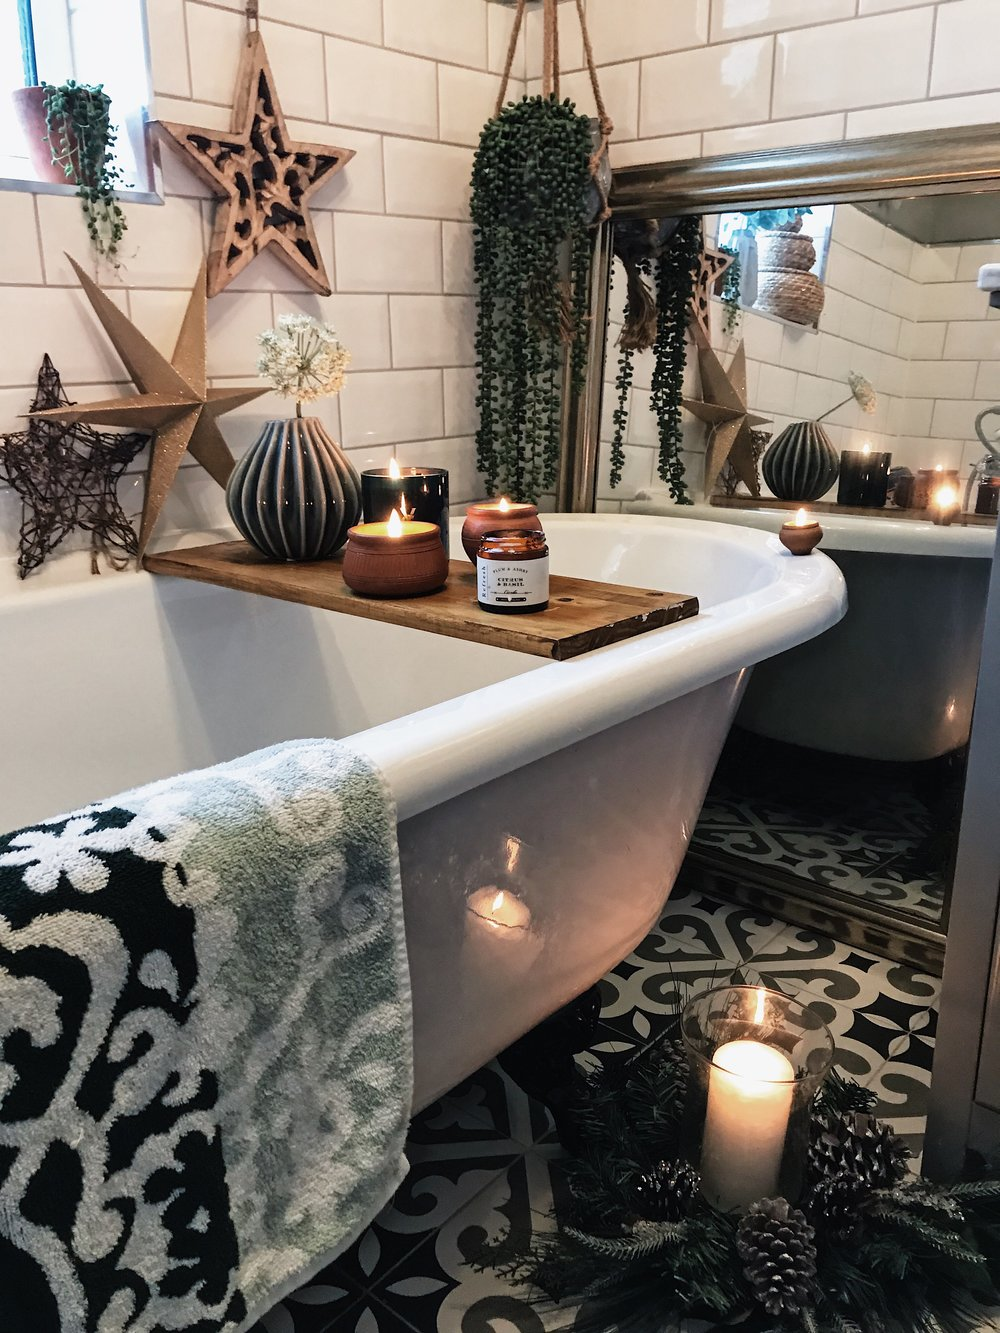 Every bathroom needs stars! - Gold glitter star from Keep It Living